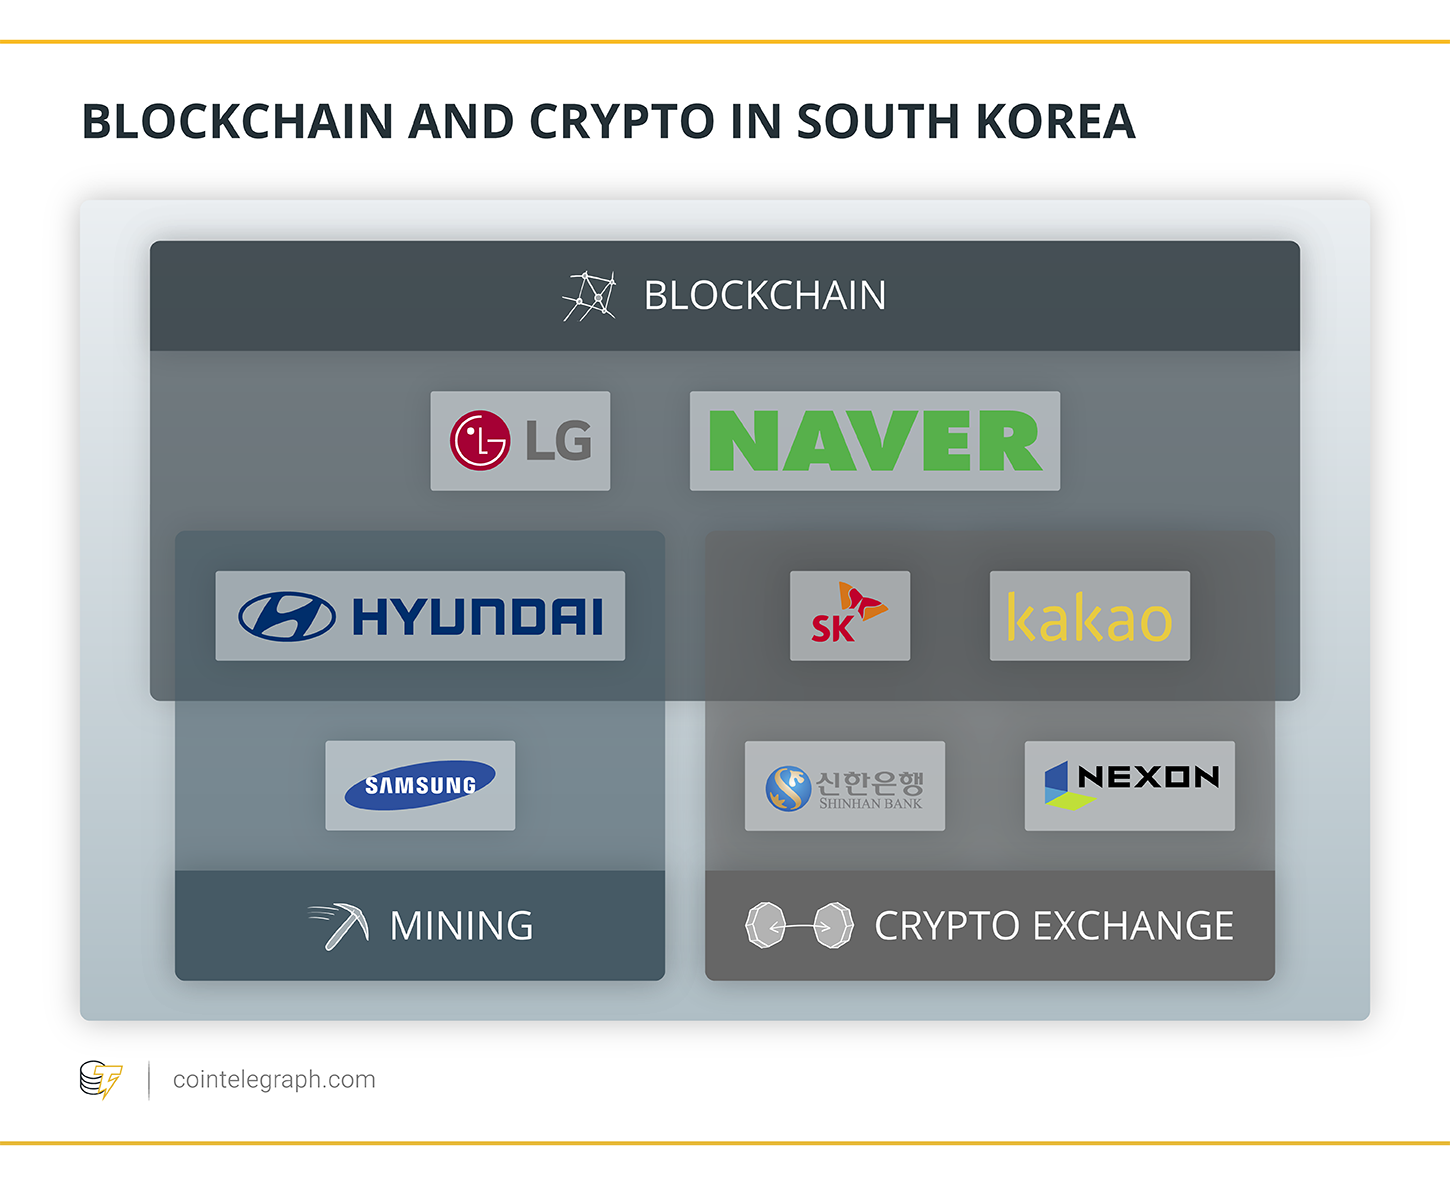 South Korea's Crypto Market Overview: How Largest Banks and